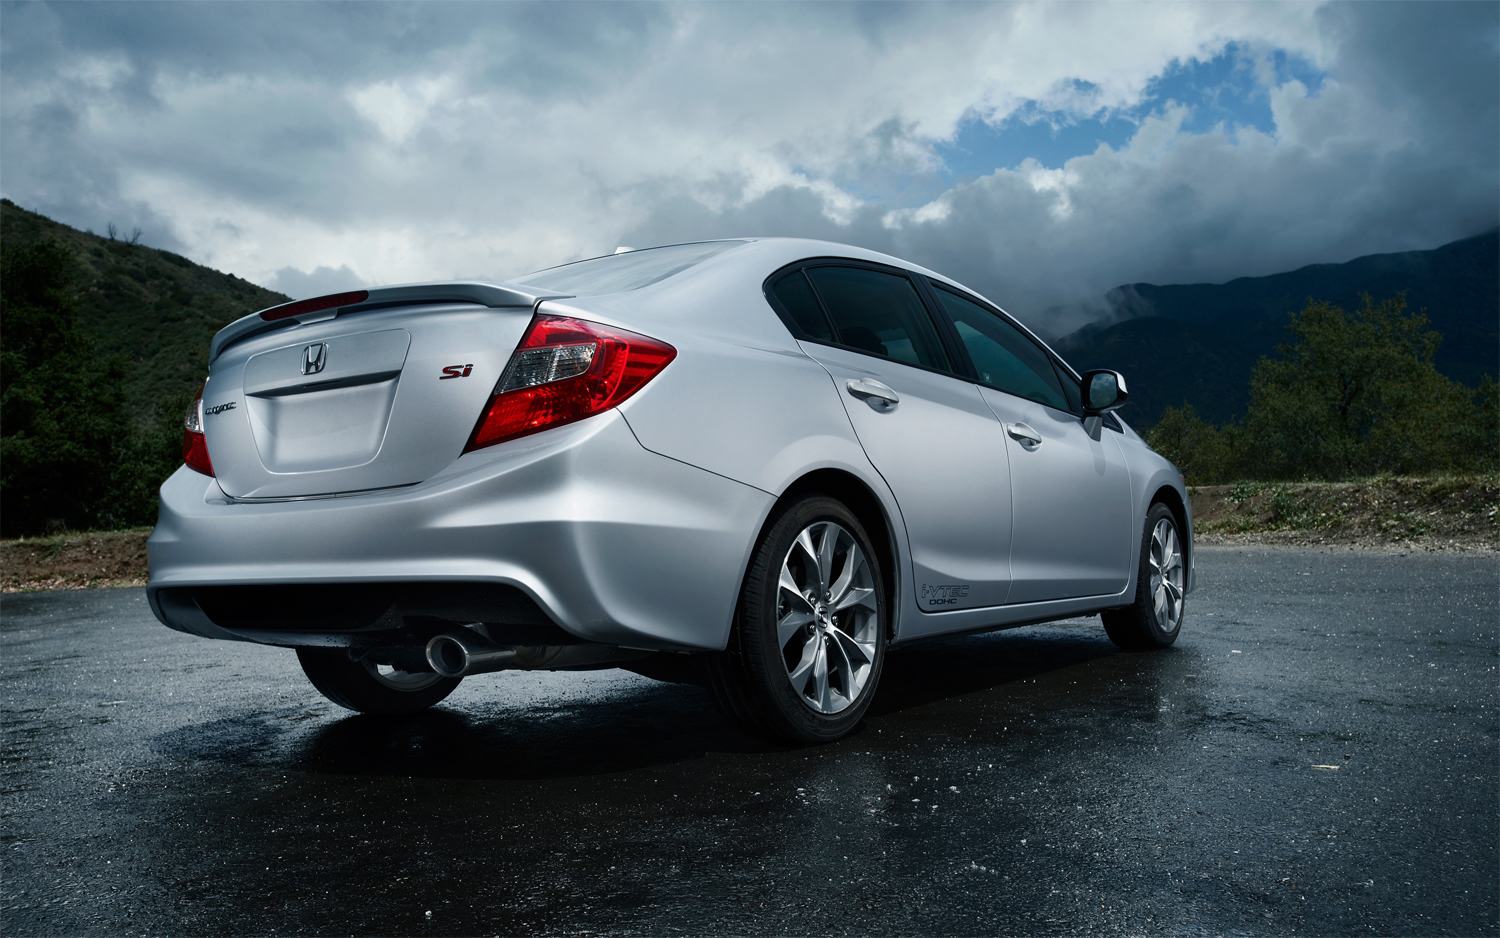 2012 Honda Civic Si Long Term Update 3